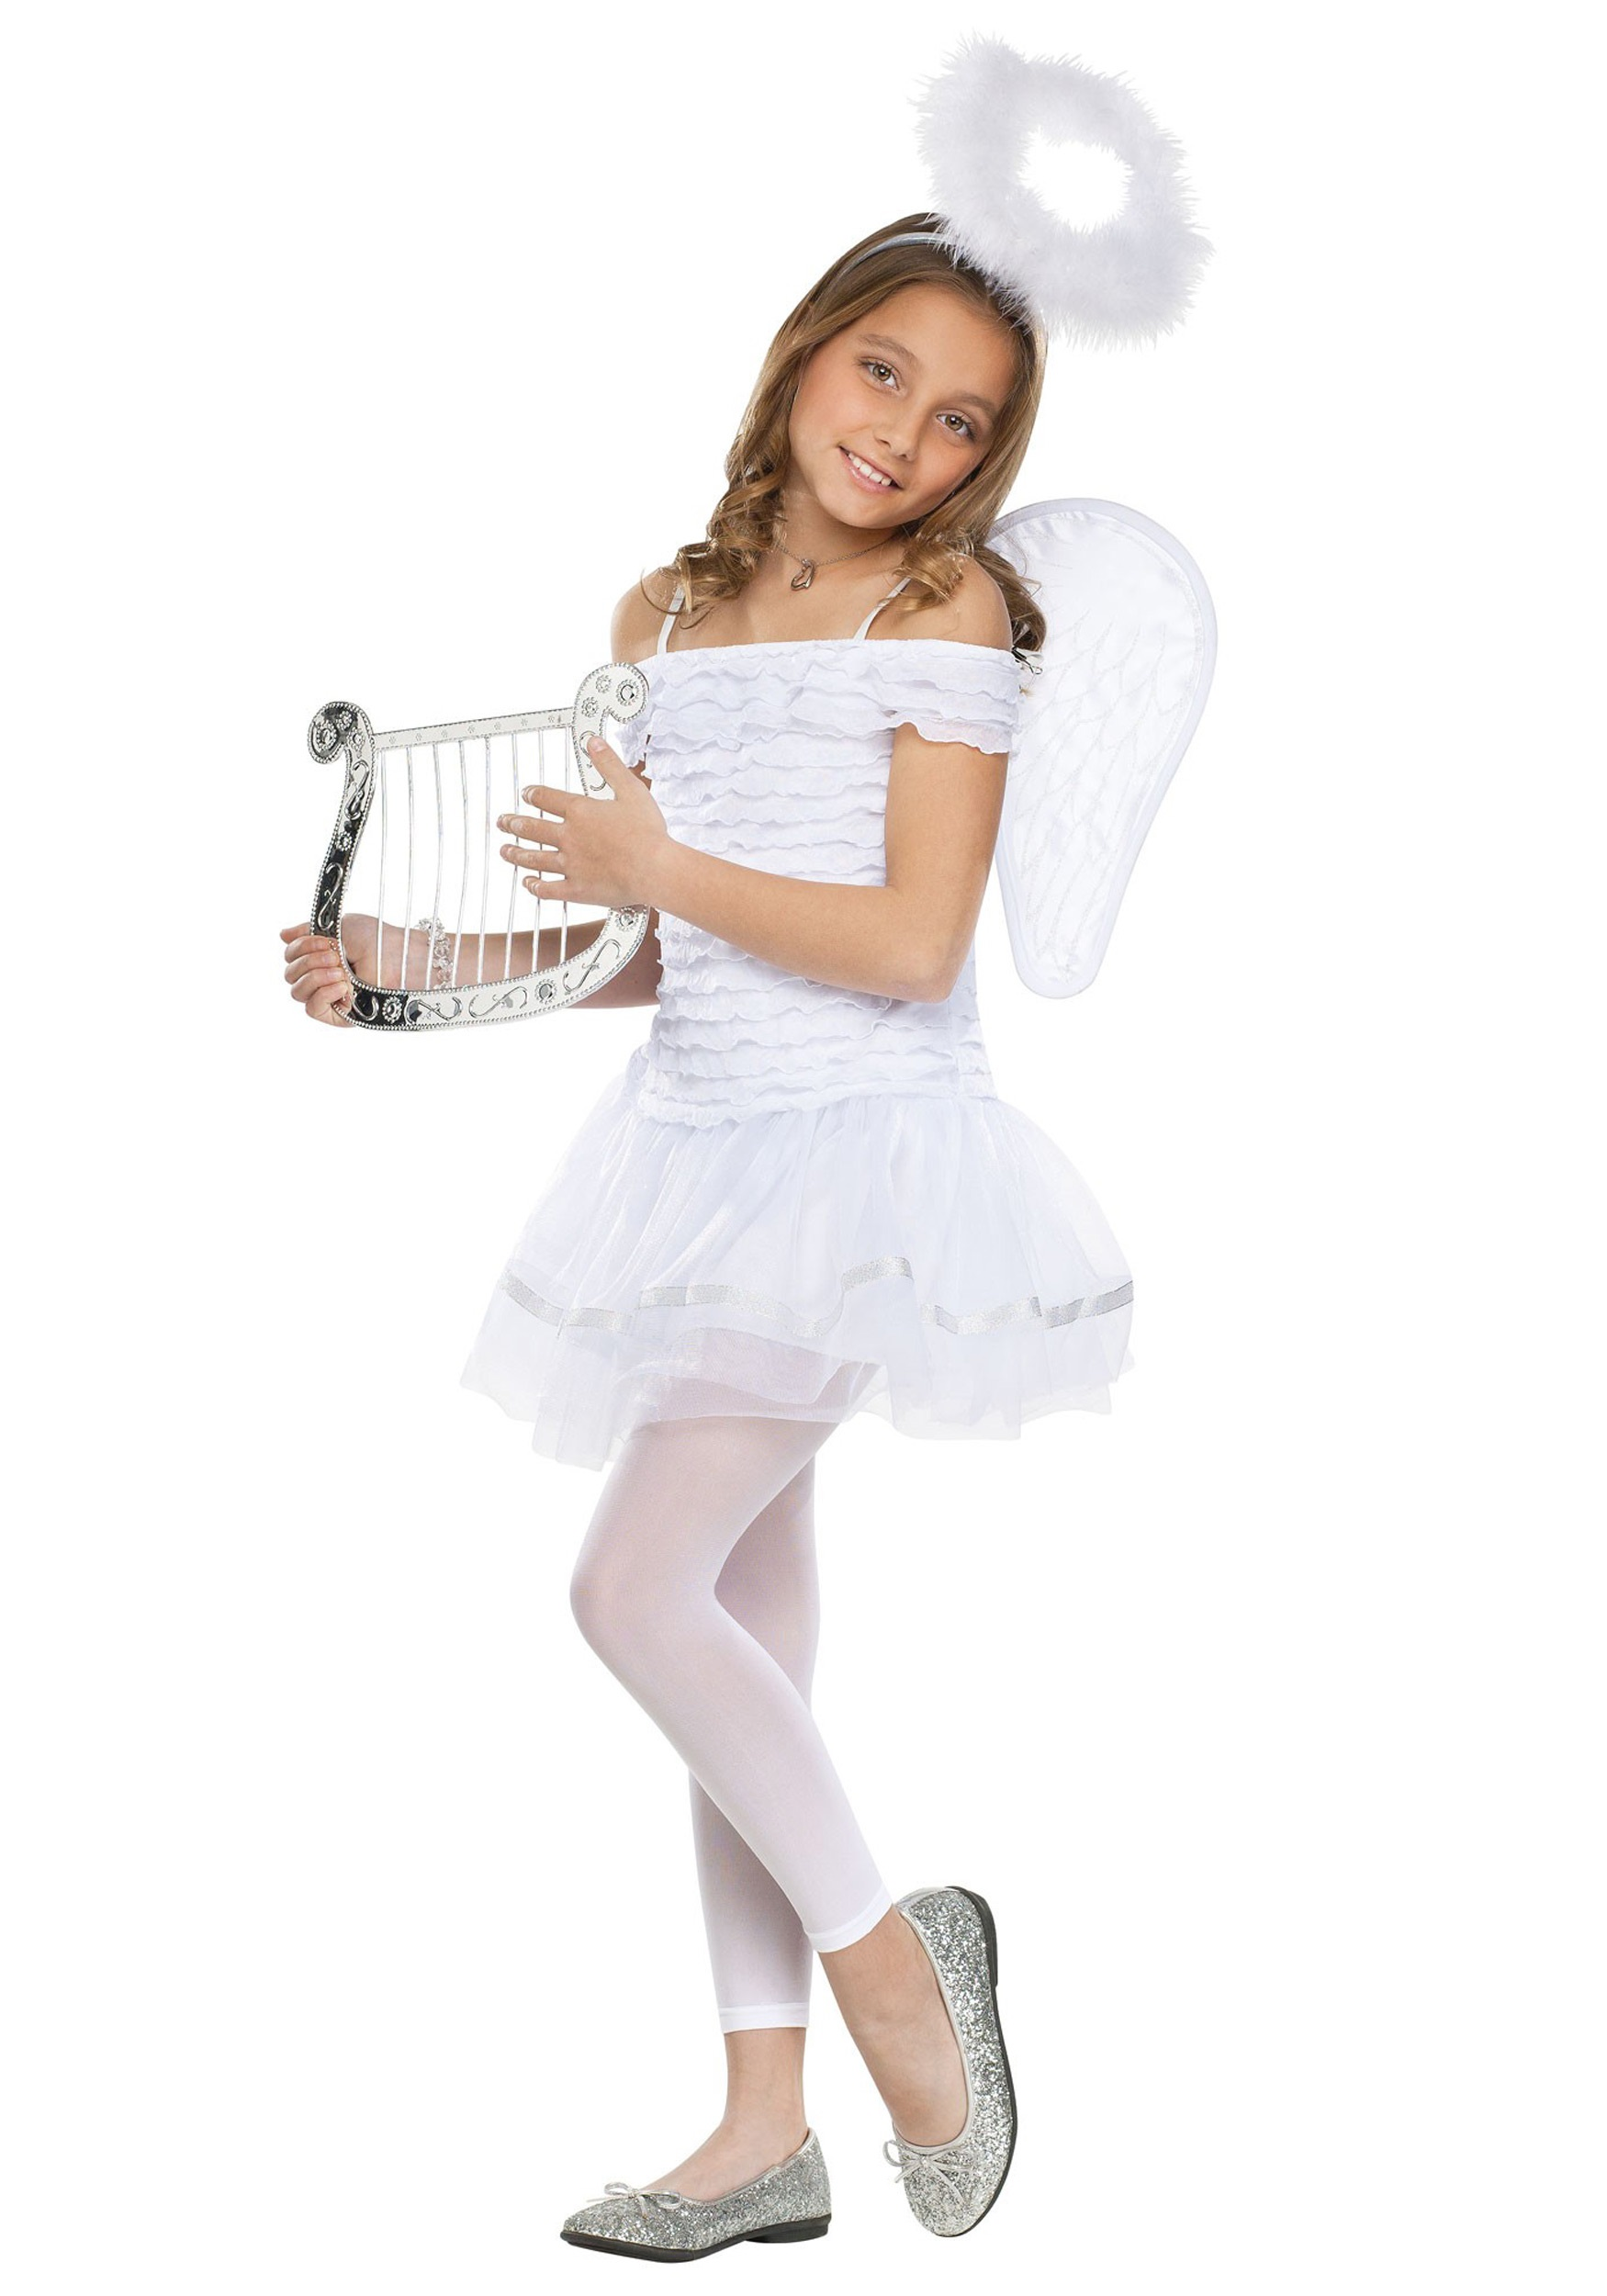 angel wings and halo $ 9 99 size st add child angel costume wings $ 6